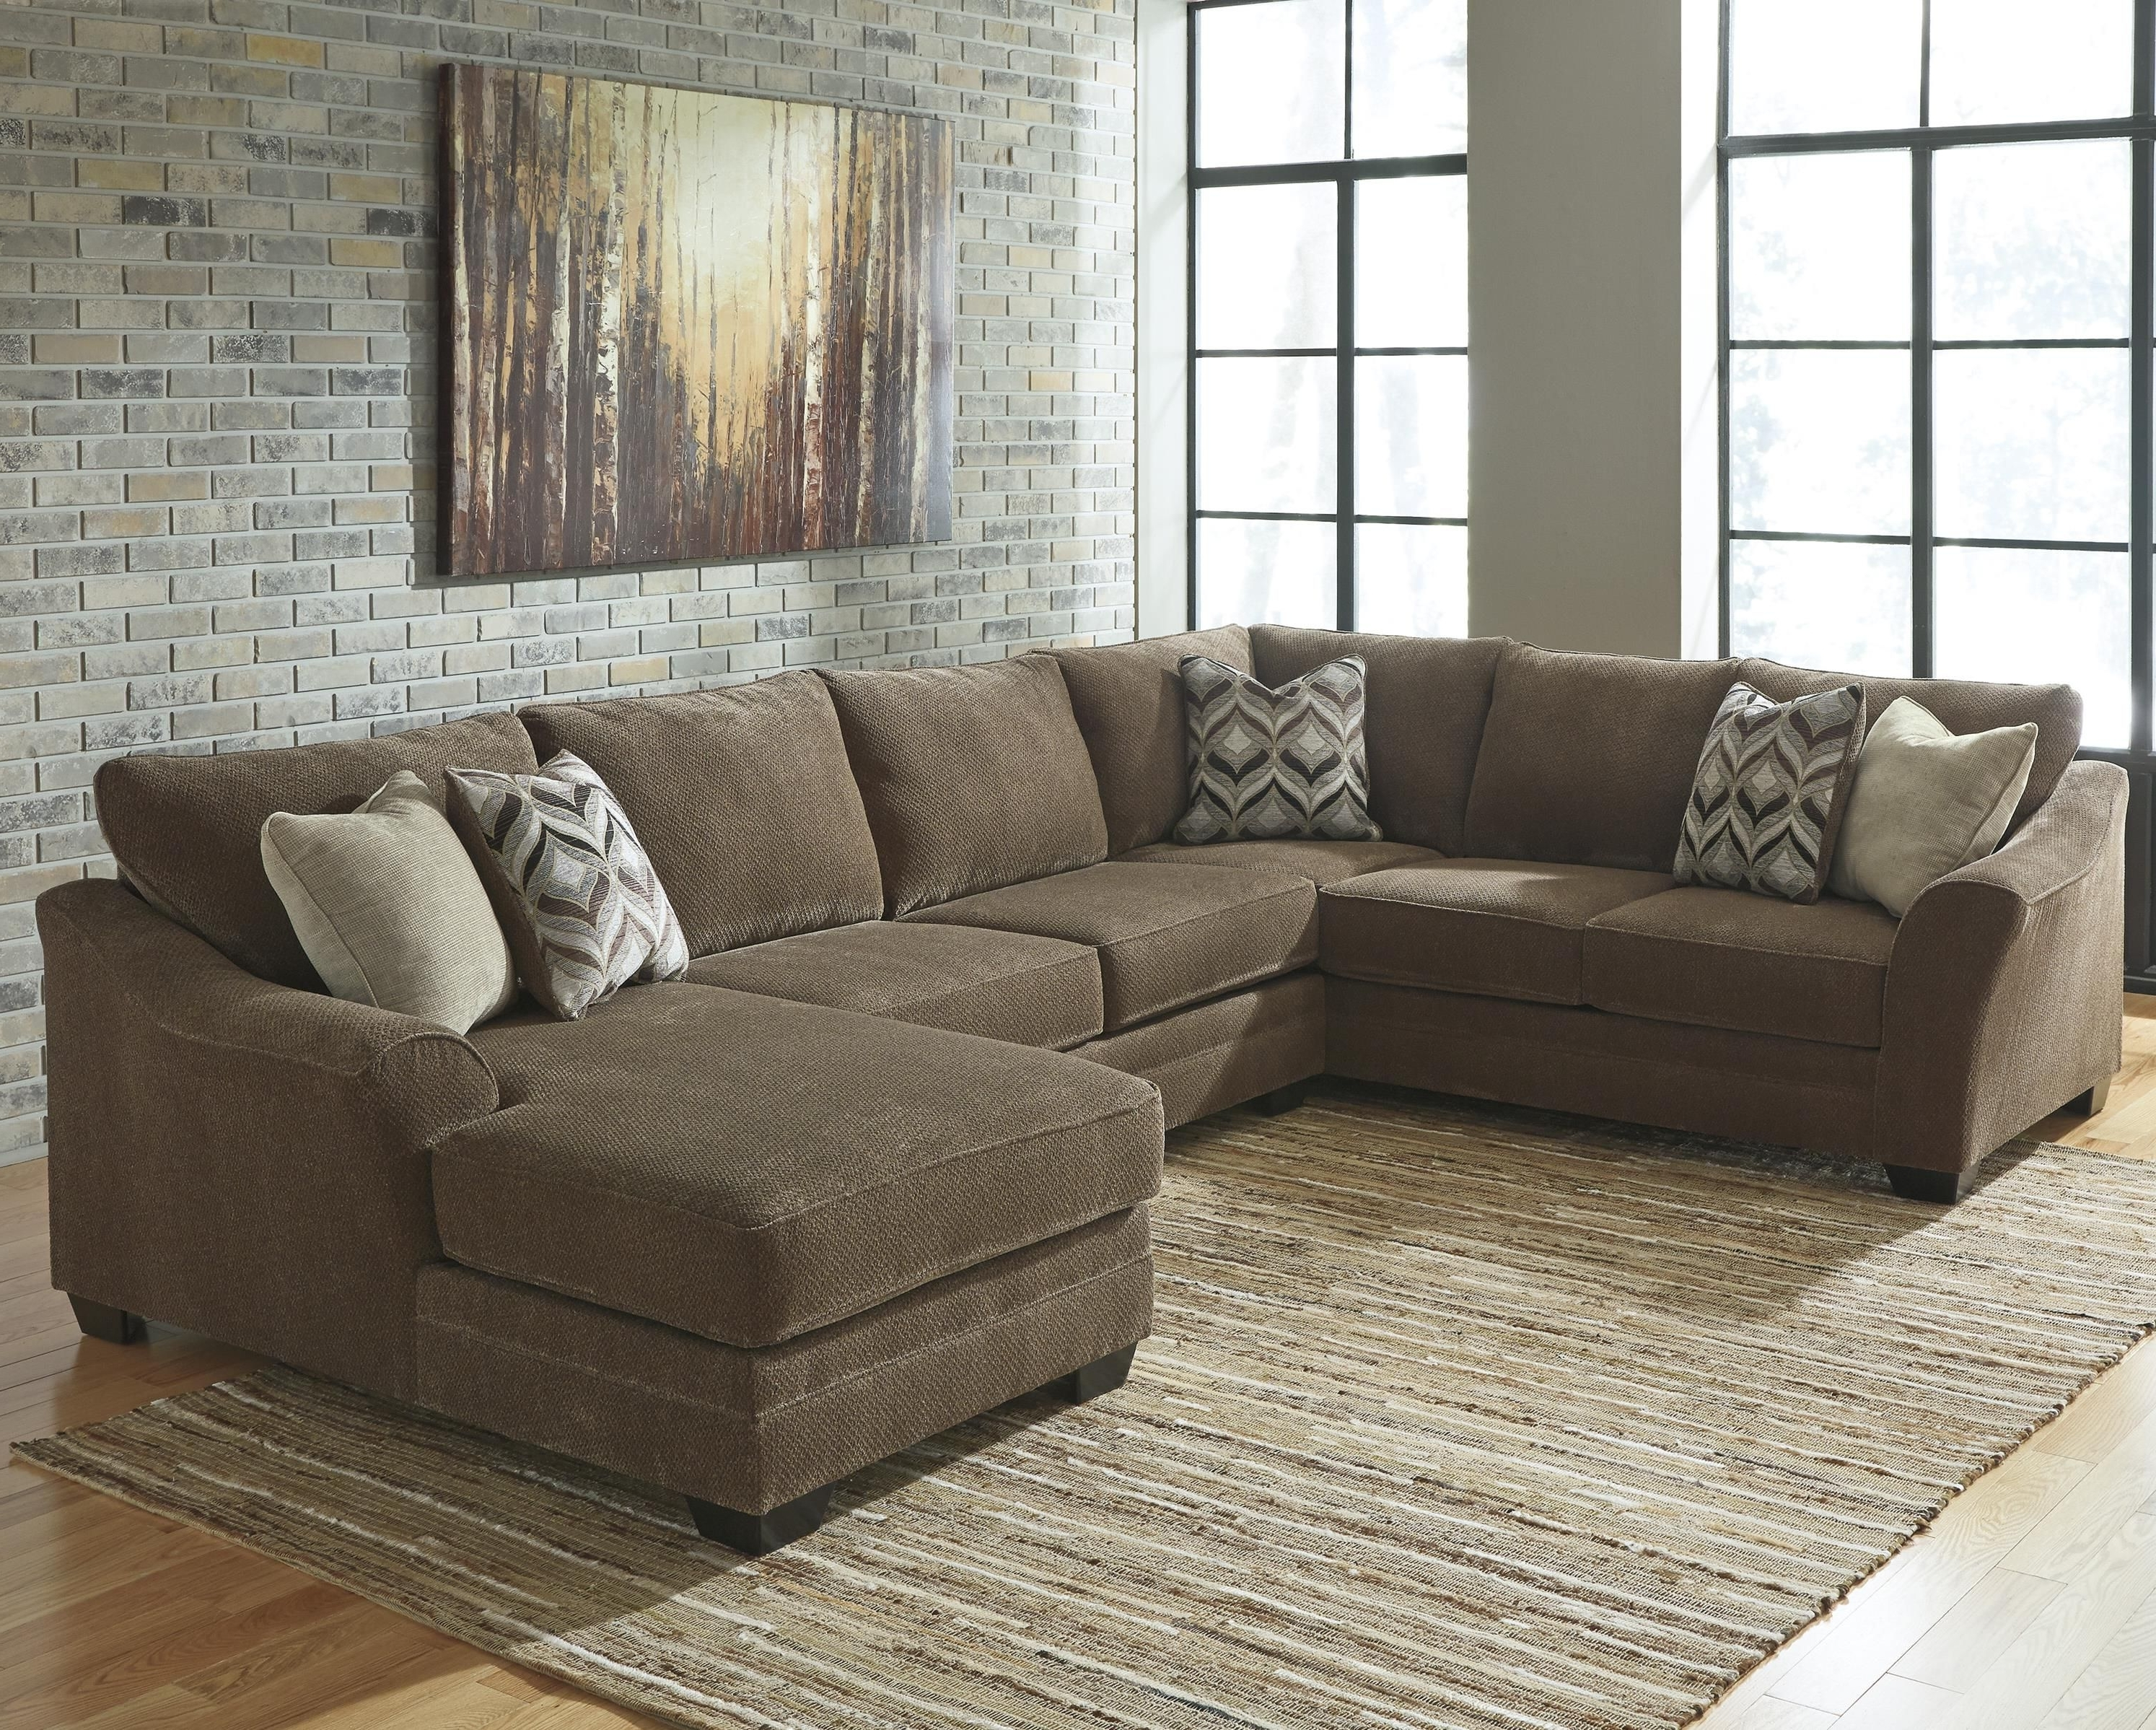 Royal Furniture Sectional Sofas With Regard To Most Current Justyna Contemporary 3 Piece Sectional With Right Chaise (View 18 of 20)